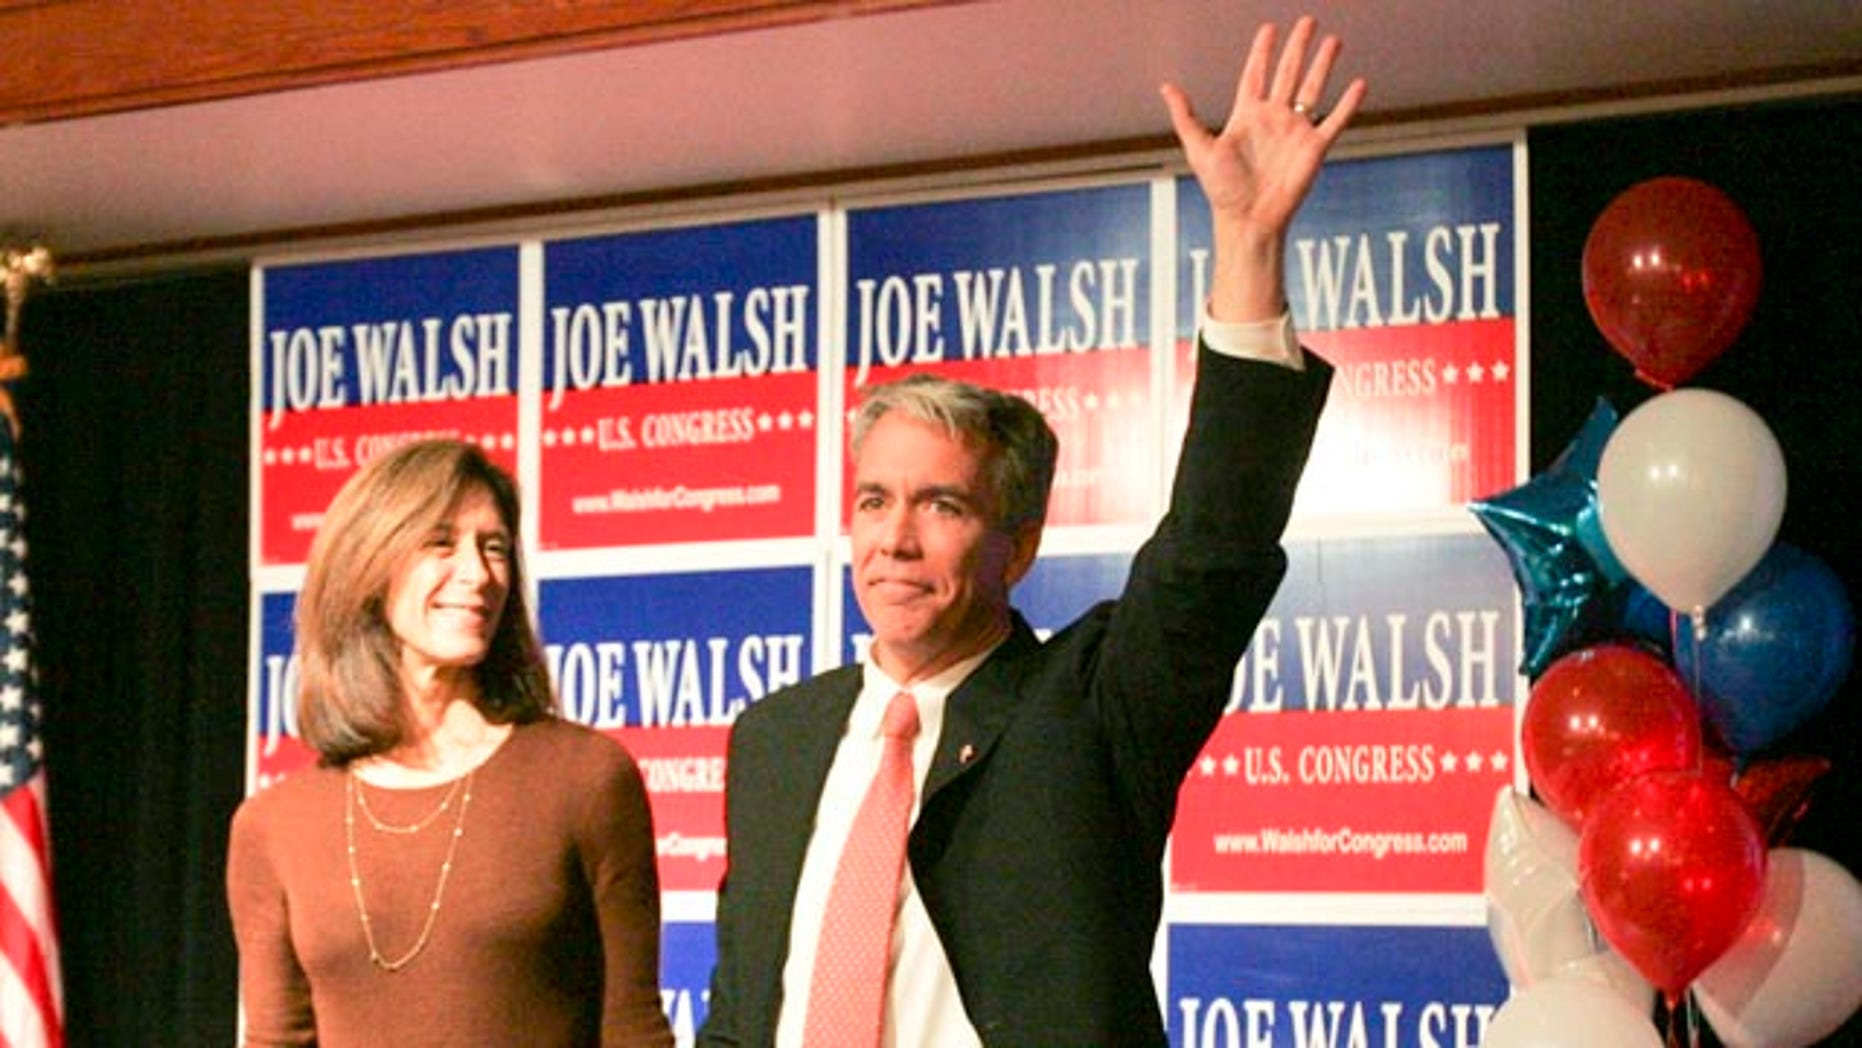 Nov. 2: Republican Joe Walsh waves to the crowd of supporters, while standing next to his wife in Wauconda, Ill.  On Nov. 16, U.S. Rep. Melissa Bean conceded to Walsh on Tuesday in the tightly-fought race for her former 8th Illinois Congressional District seat.